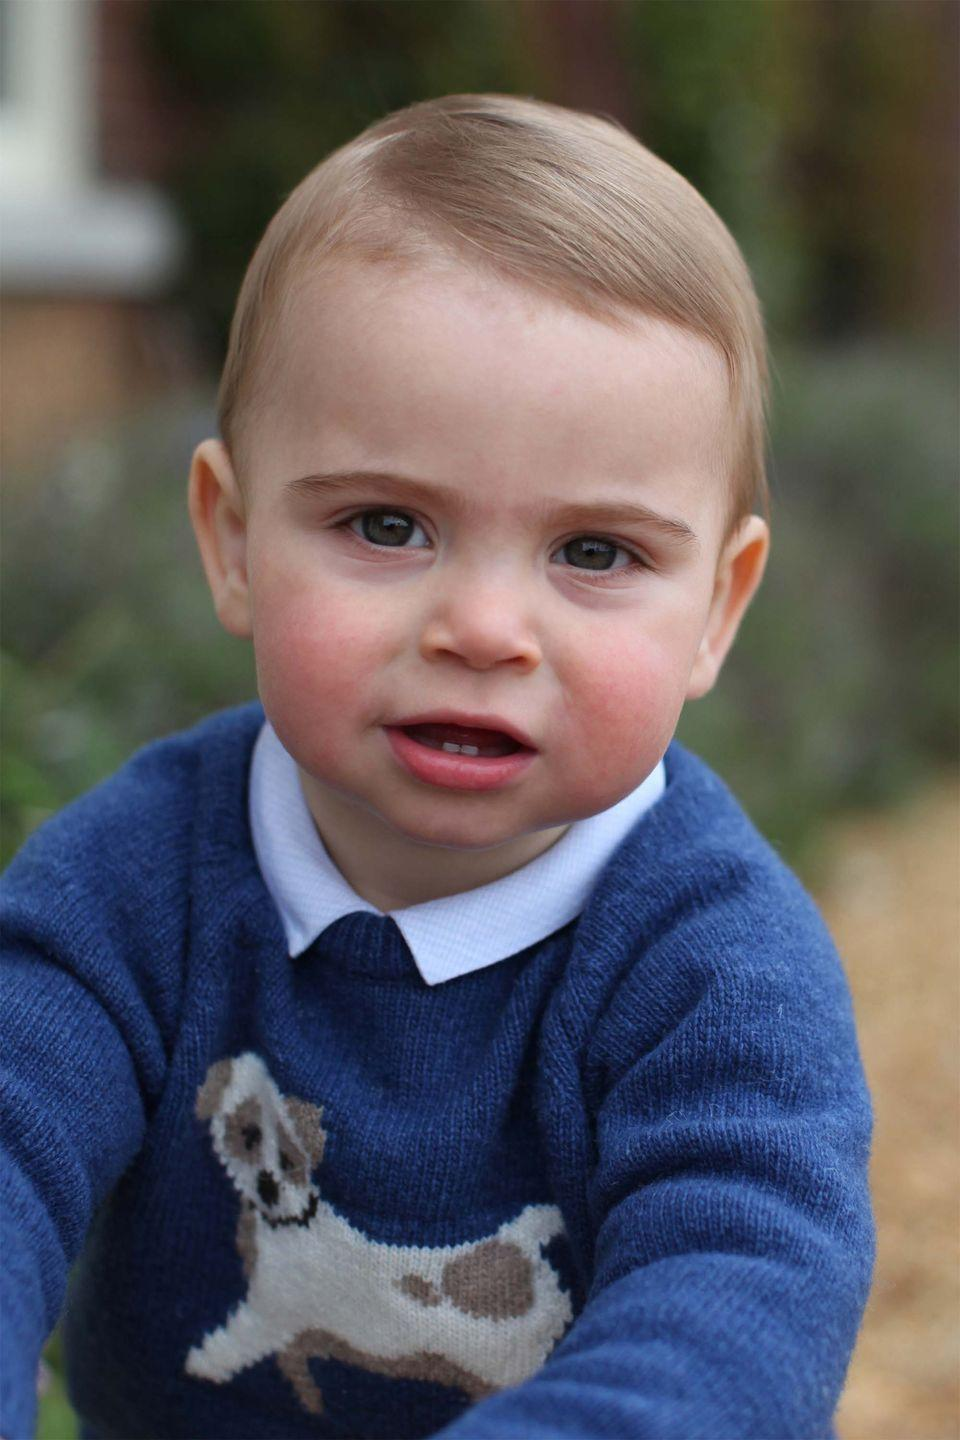 "<p>In honor of Prince Louis's first birthday, the Duke and Duchess of Cambridge <a href=""https://www.harpersbazaar.com/celebrity/latest/a27228037/prince-louis-portraits-compared-to-prince-george-prince-charlotte/"" rel=""nofollow noopener"" target=""_blank"" data-ylk=""slk:released"" class=""link rapid-noclick-resp"">released</a> the first official portraits of the little prince. Where can we get his dog sweater in our size? </p>"